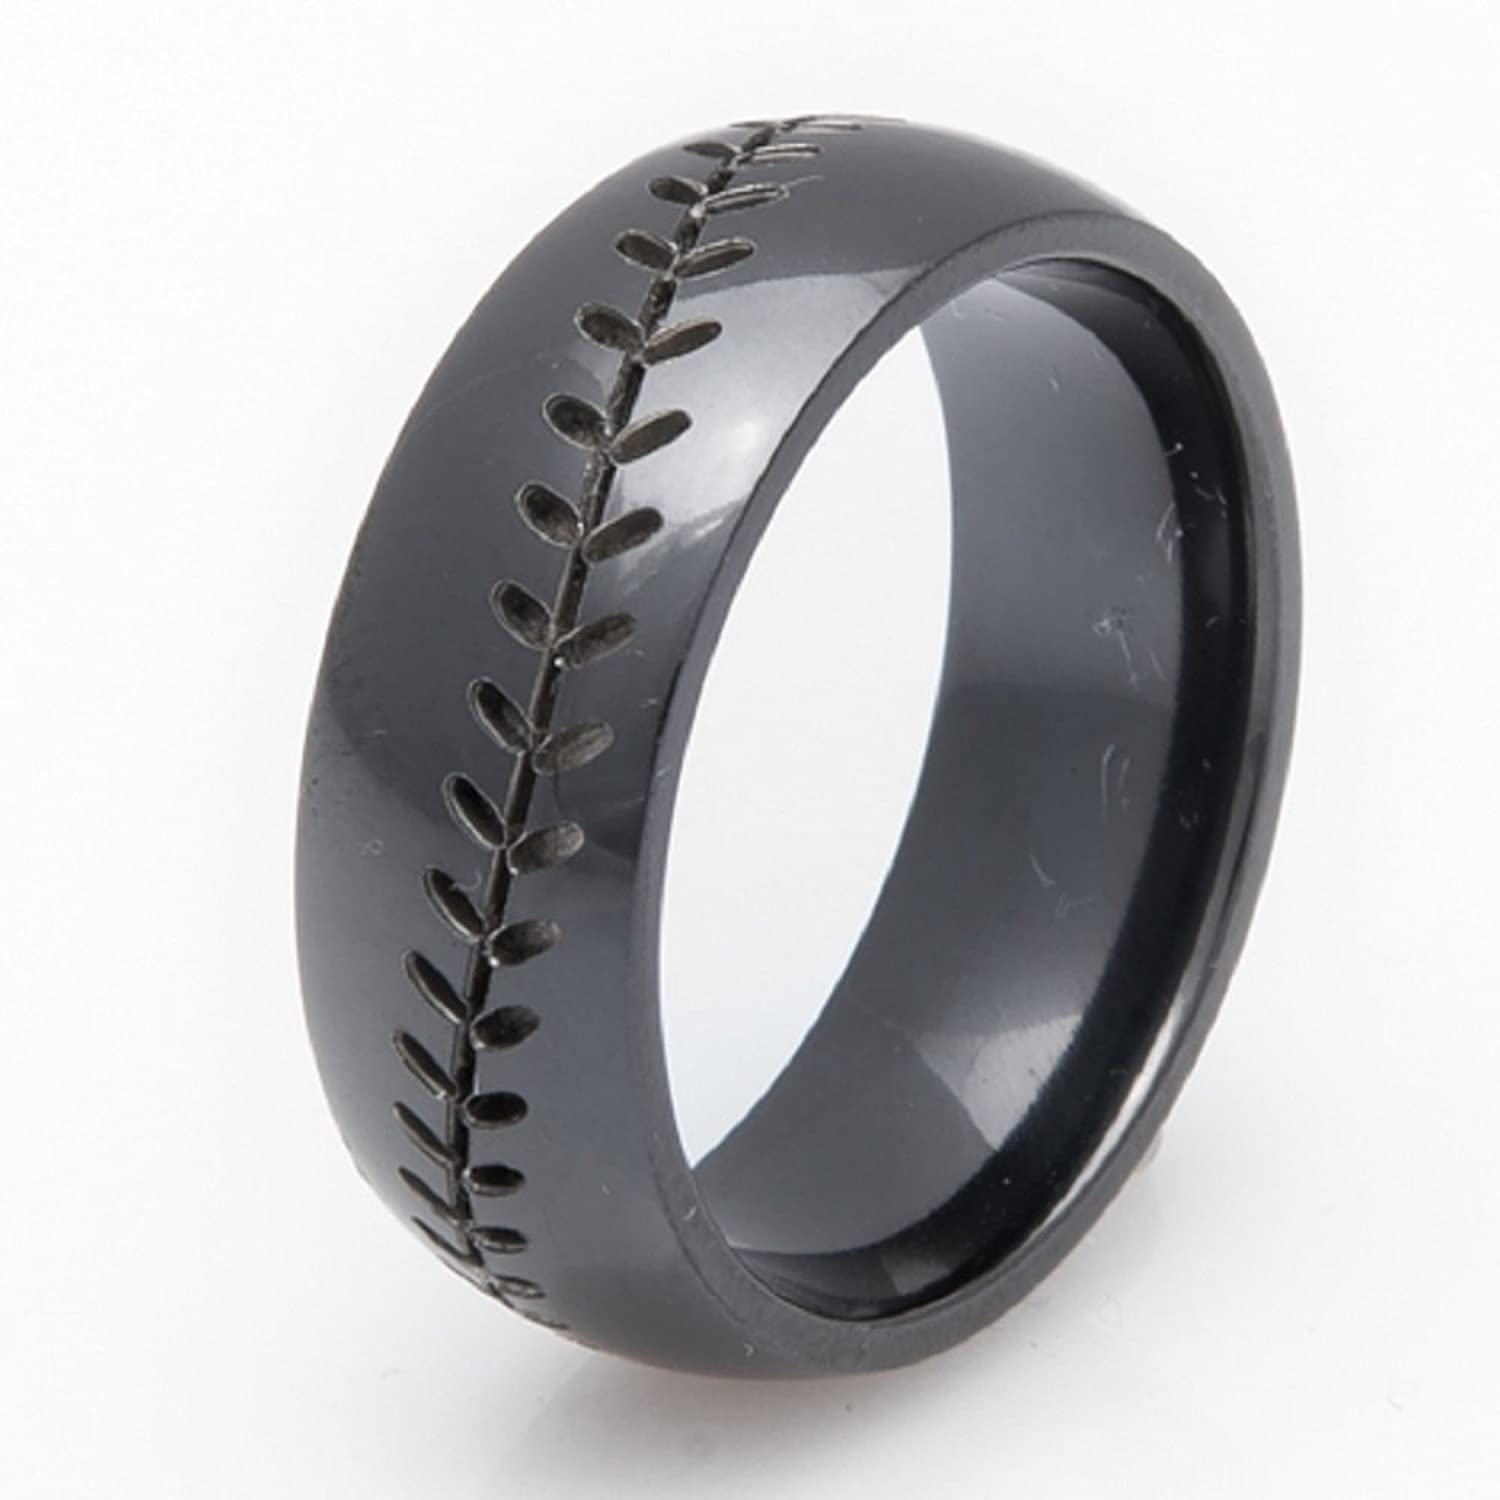 Amazon Black Zirconium Baseball Wedding Band 8mm Comfort Fit 8 Jewelry